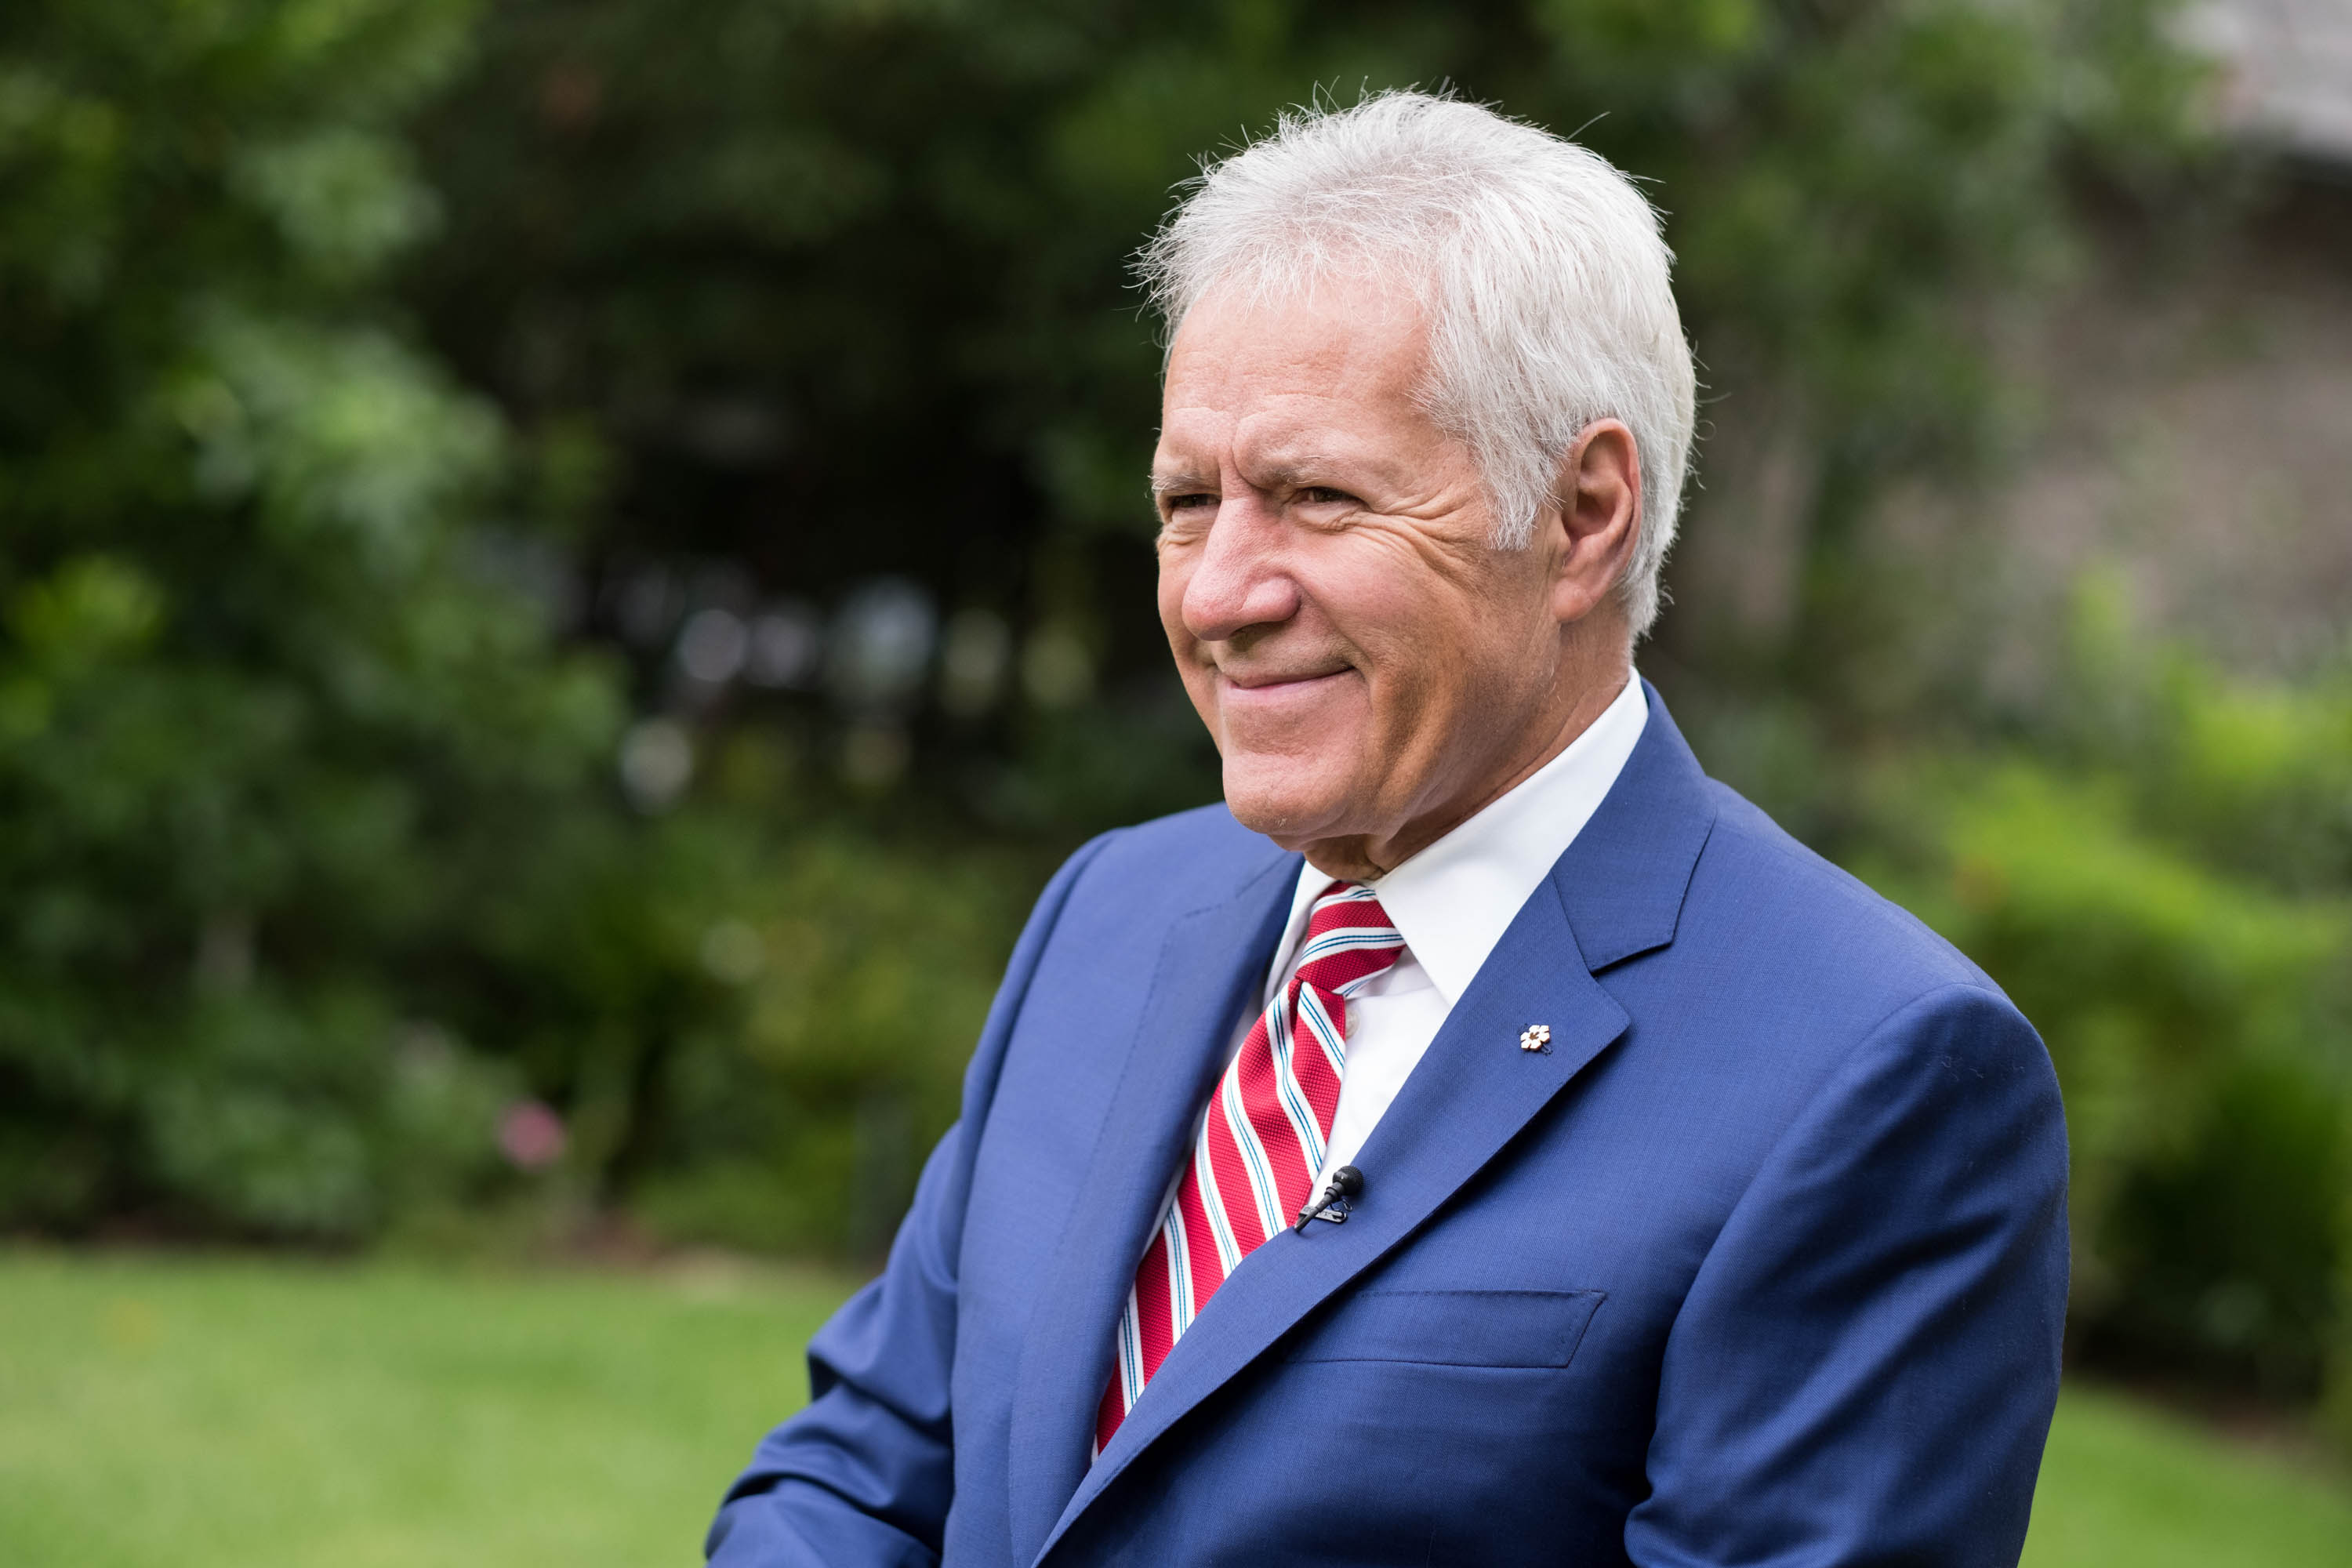 Alex Trebek attends the 150th anniversary of Canada's Confederation at the Official Residence of Canada. | Photo: GettyImages